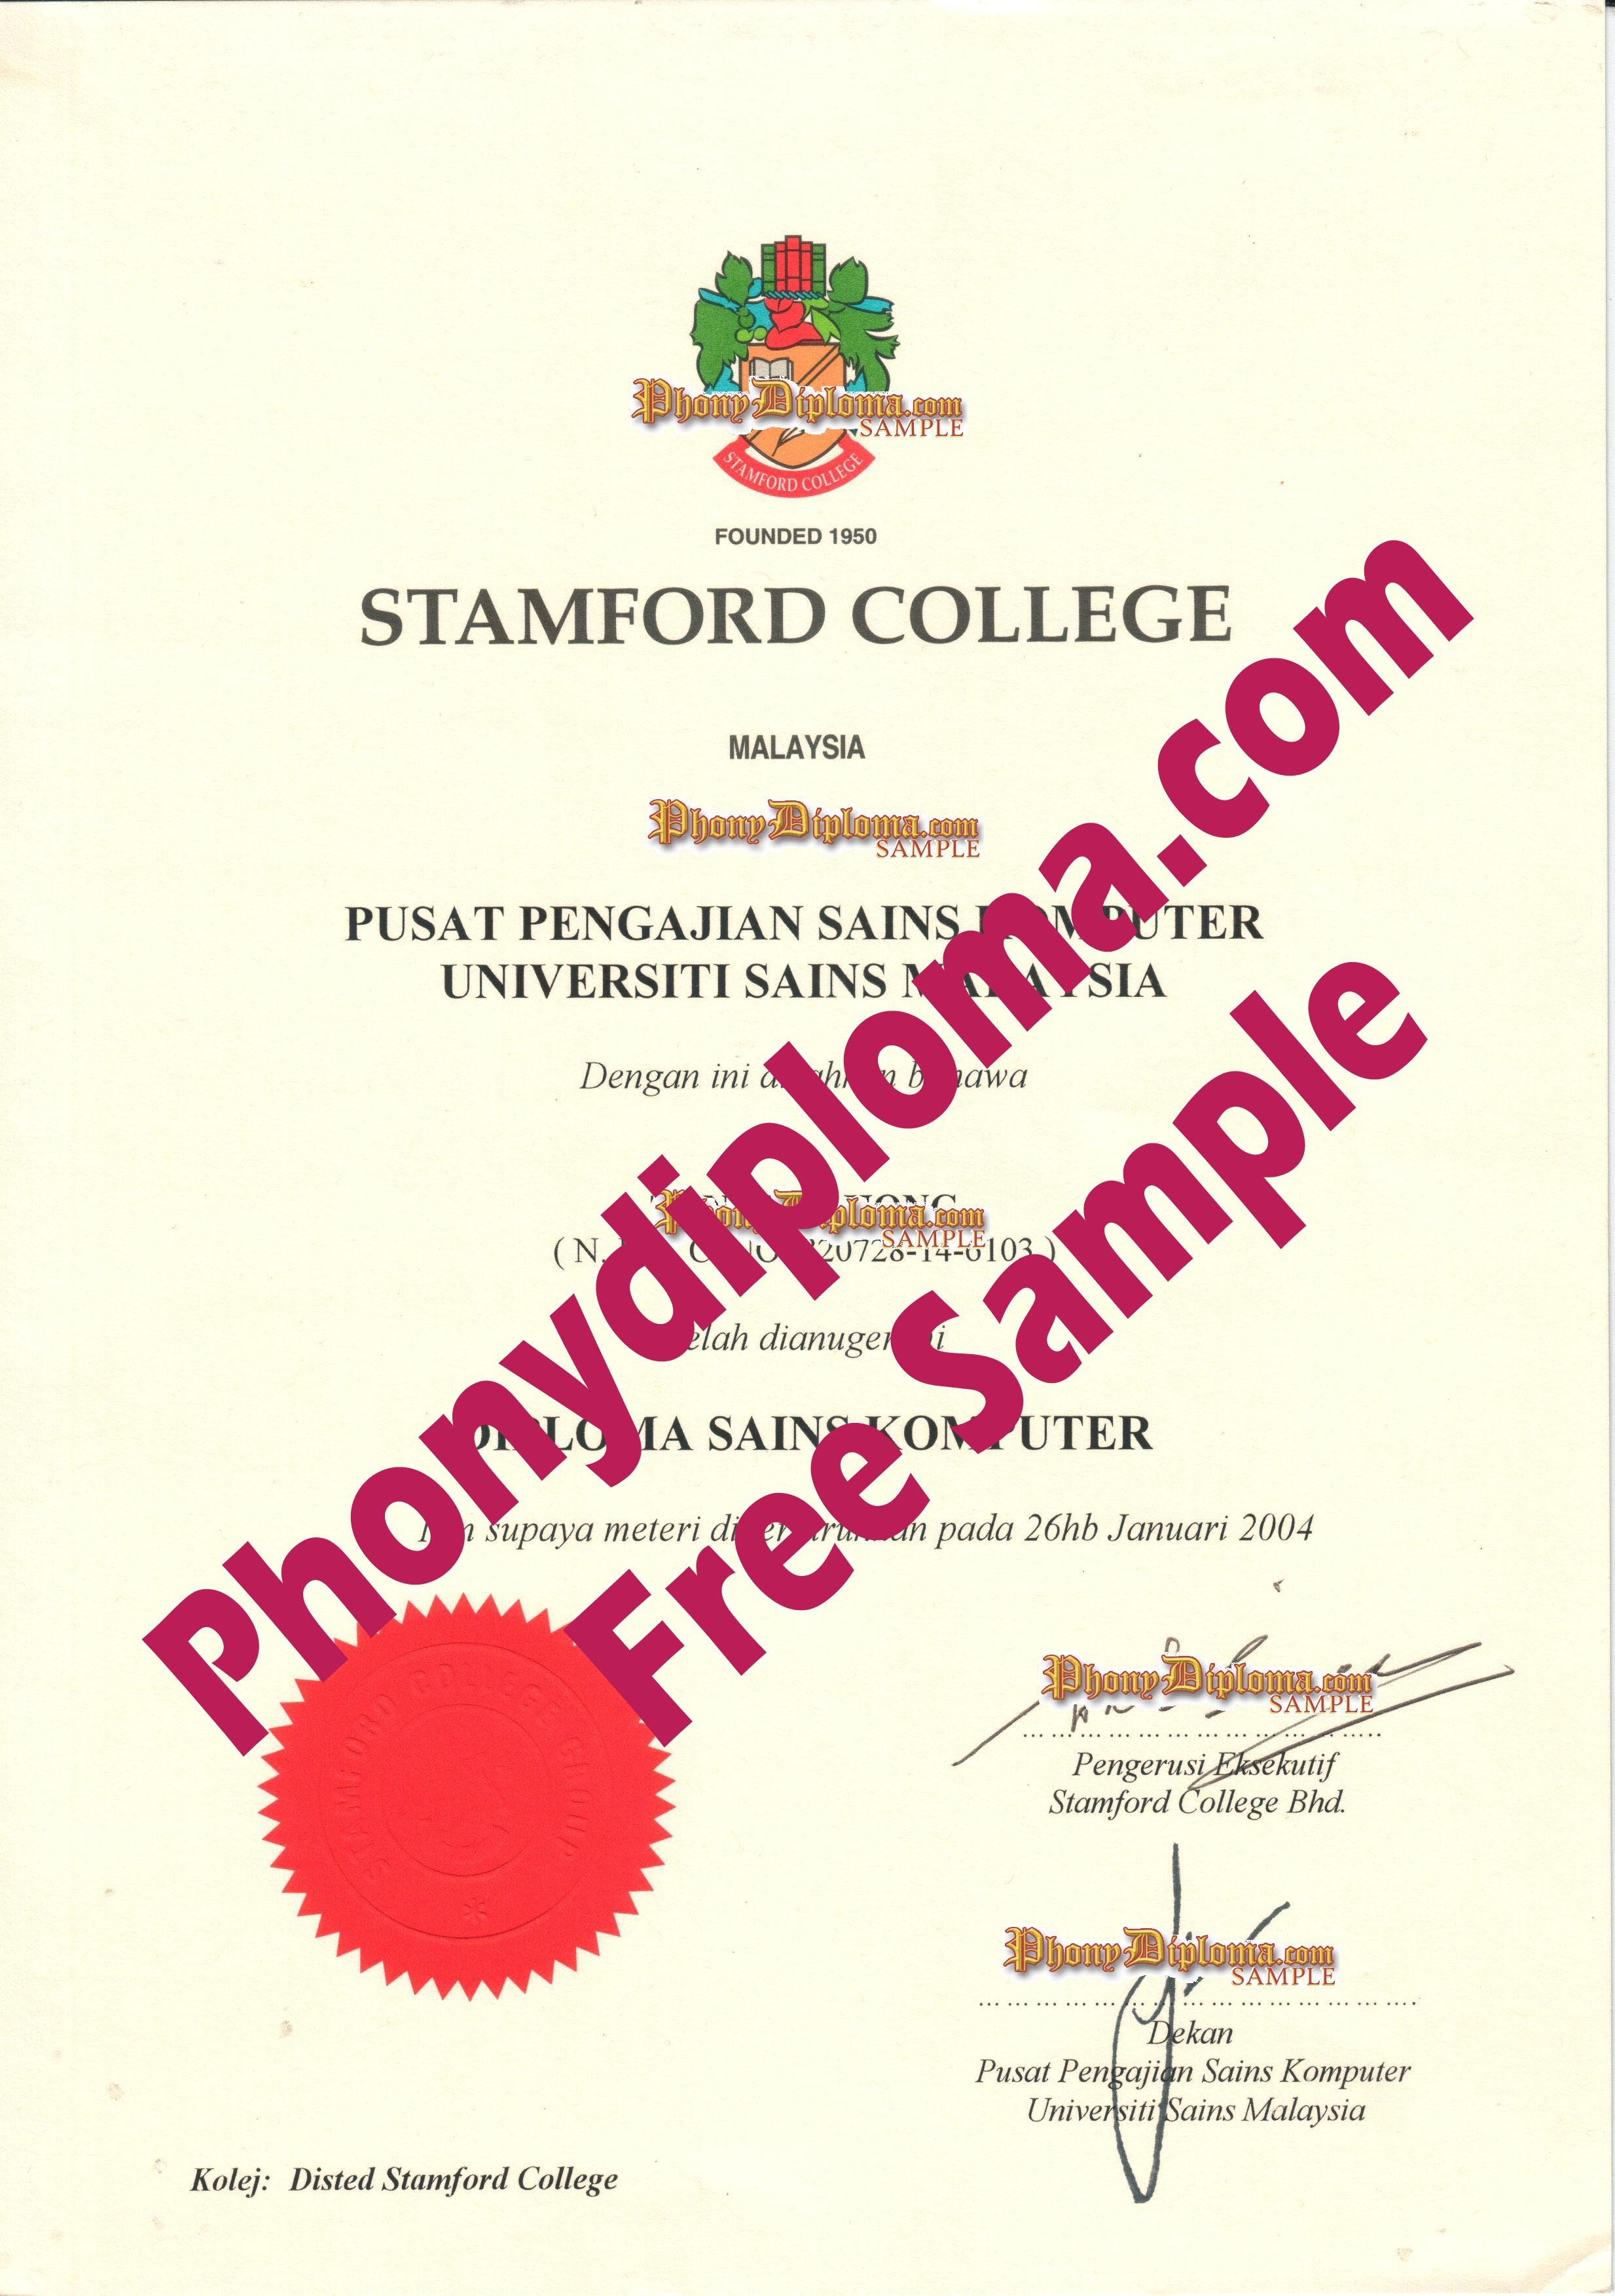 Stamford, Malay Free Sample From Phonydiploma